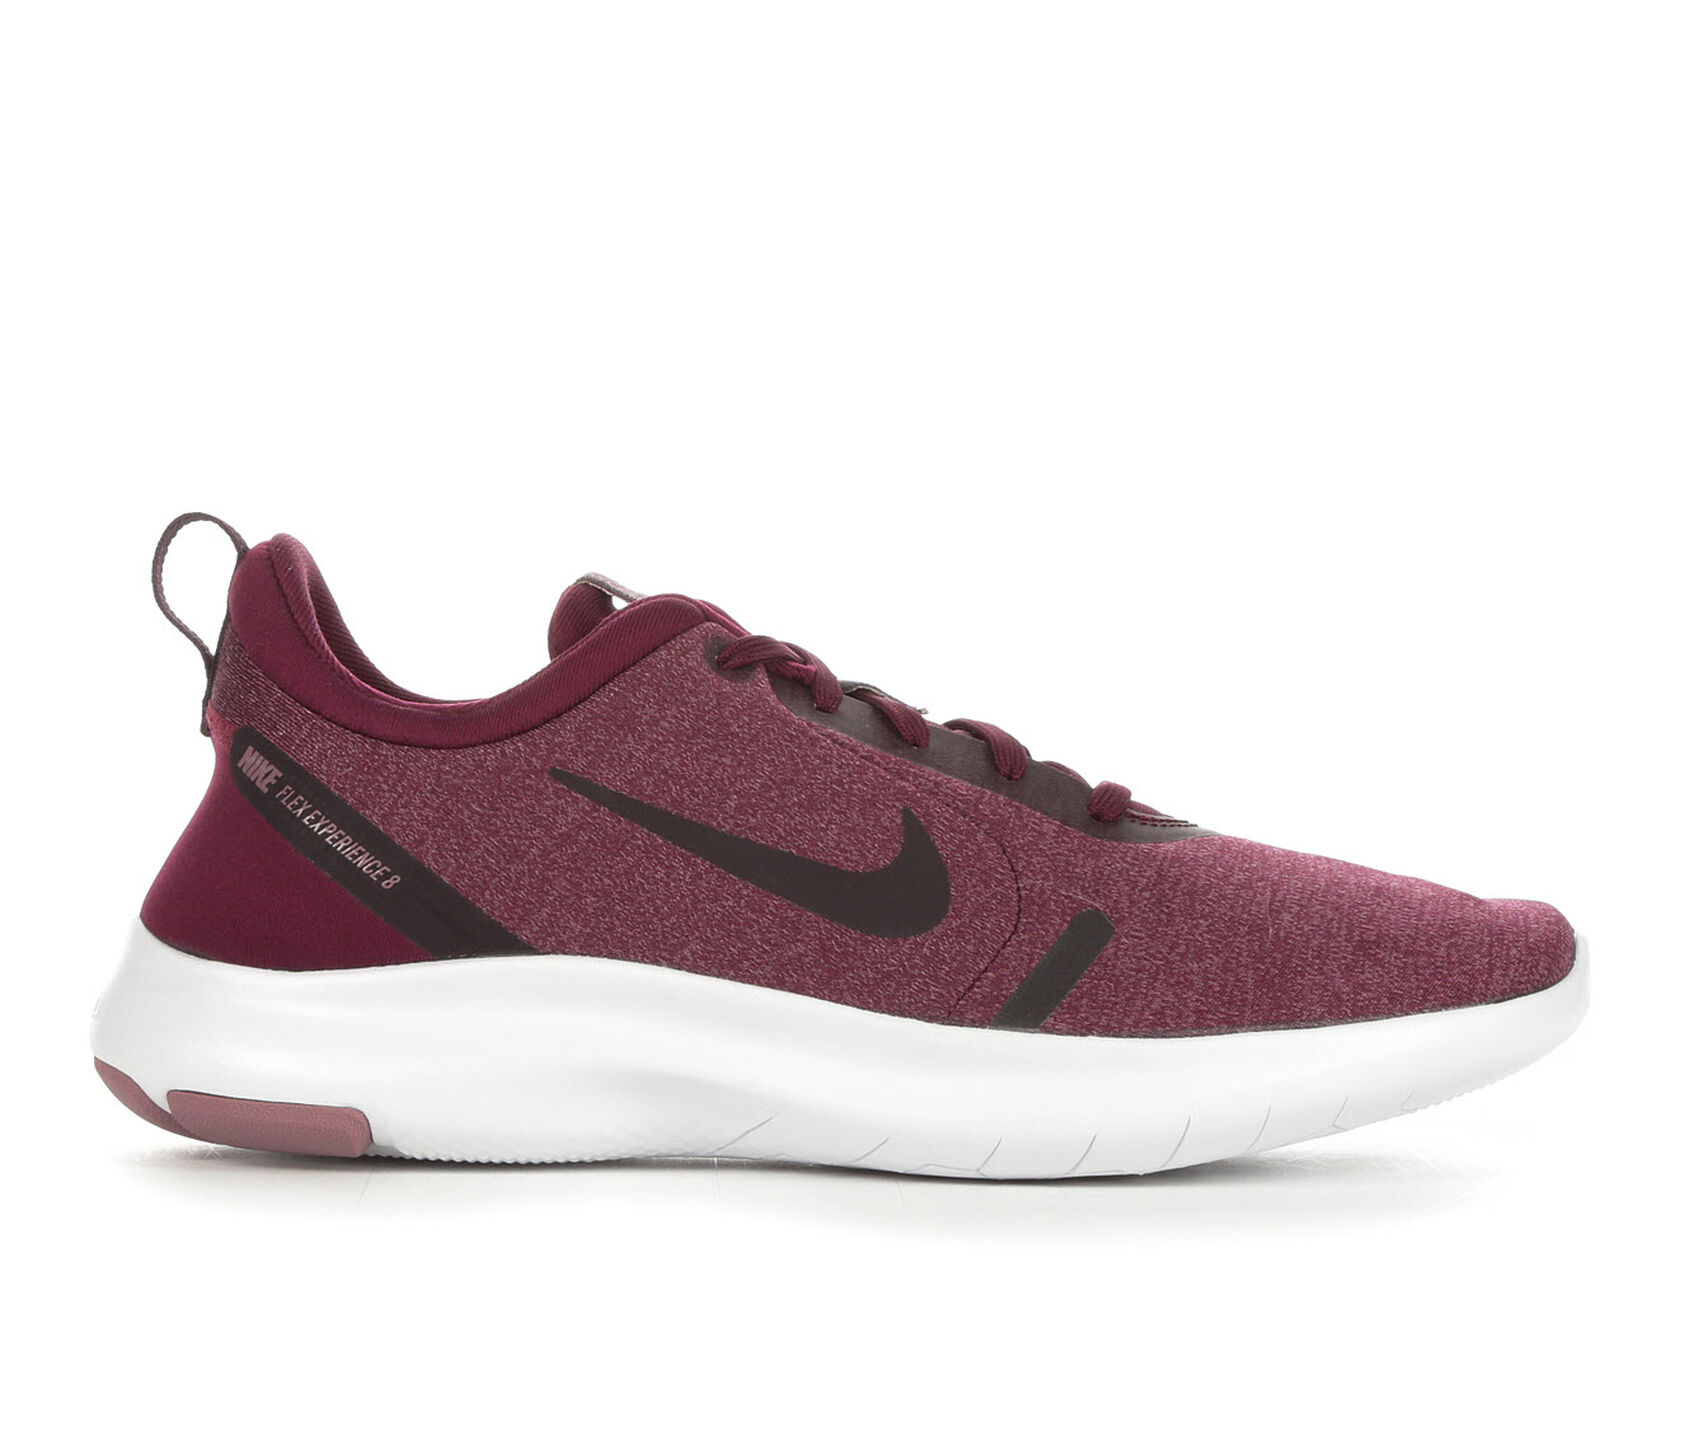 fashion styles innovative design official shop Women's Nike Flex Experience Run 8 Running Shoes